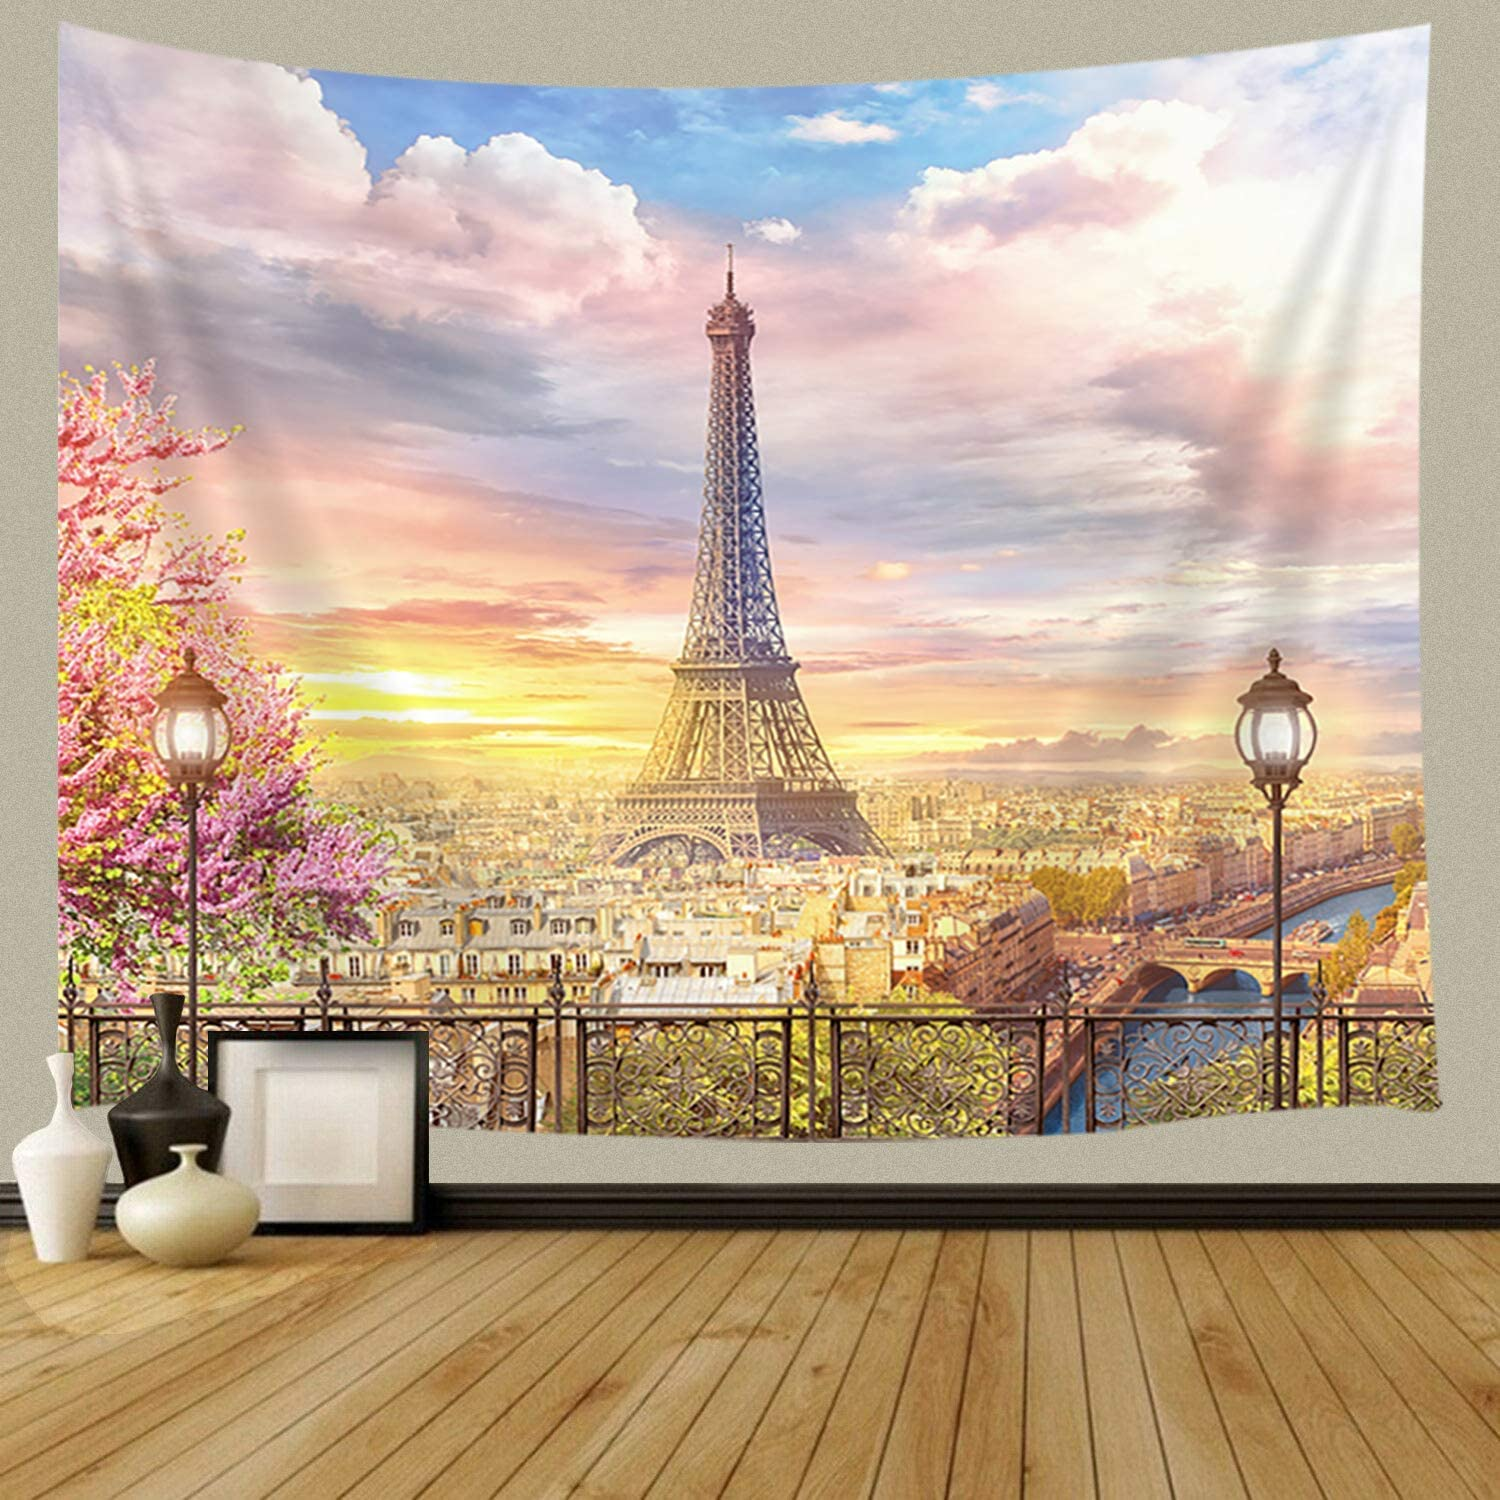 JAWO France Wall Tapestry, Balcony on The Paris Effel Tower, Art Home Decor Tapestry for Bedroom Living Room Dorm Wall Hanging Tapestry Beach Throw Table Runner Cloth 80x60inches